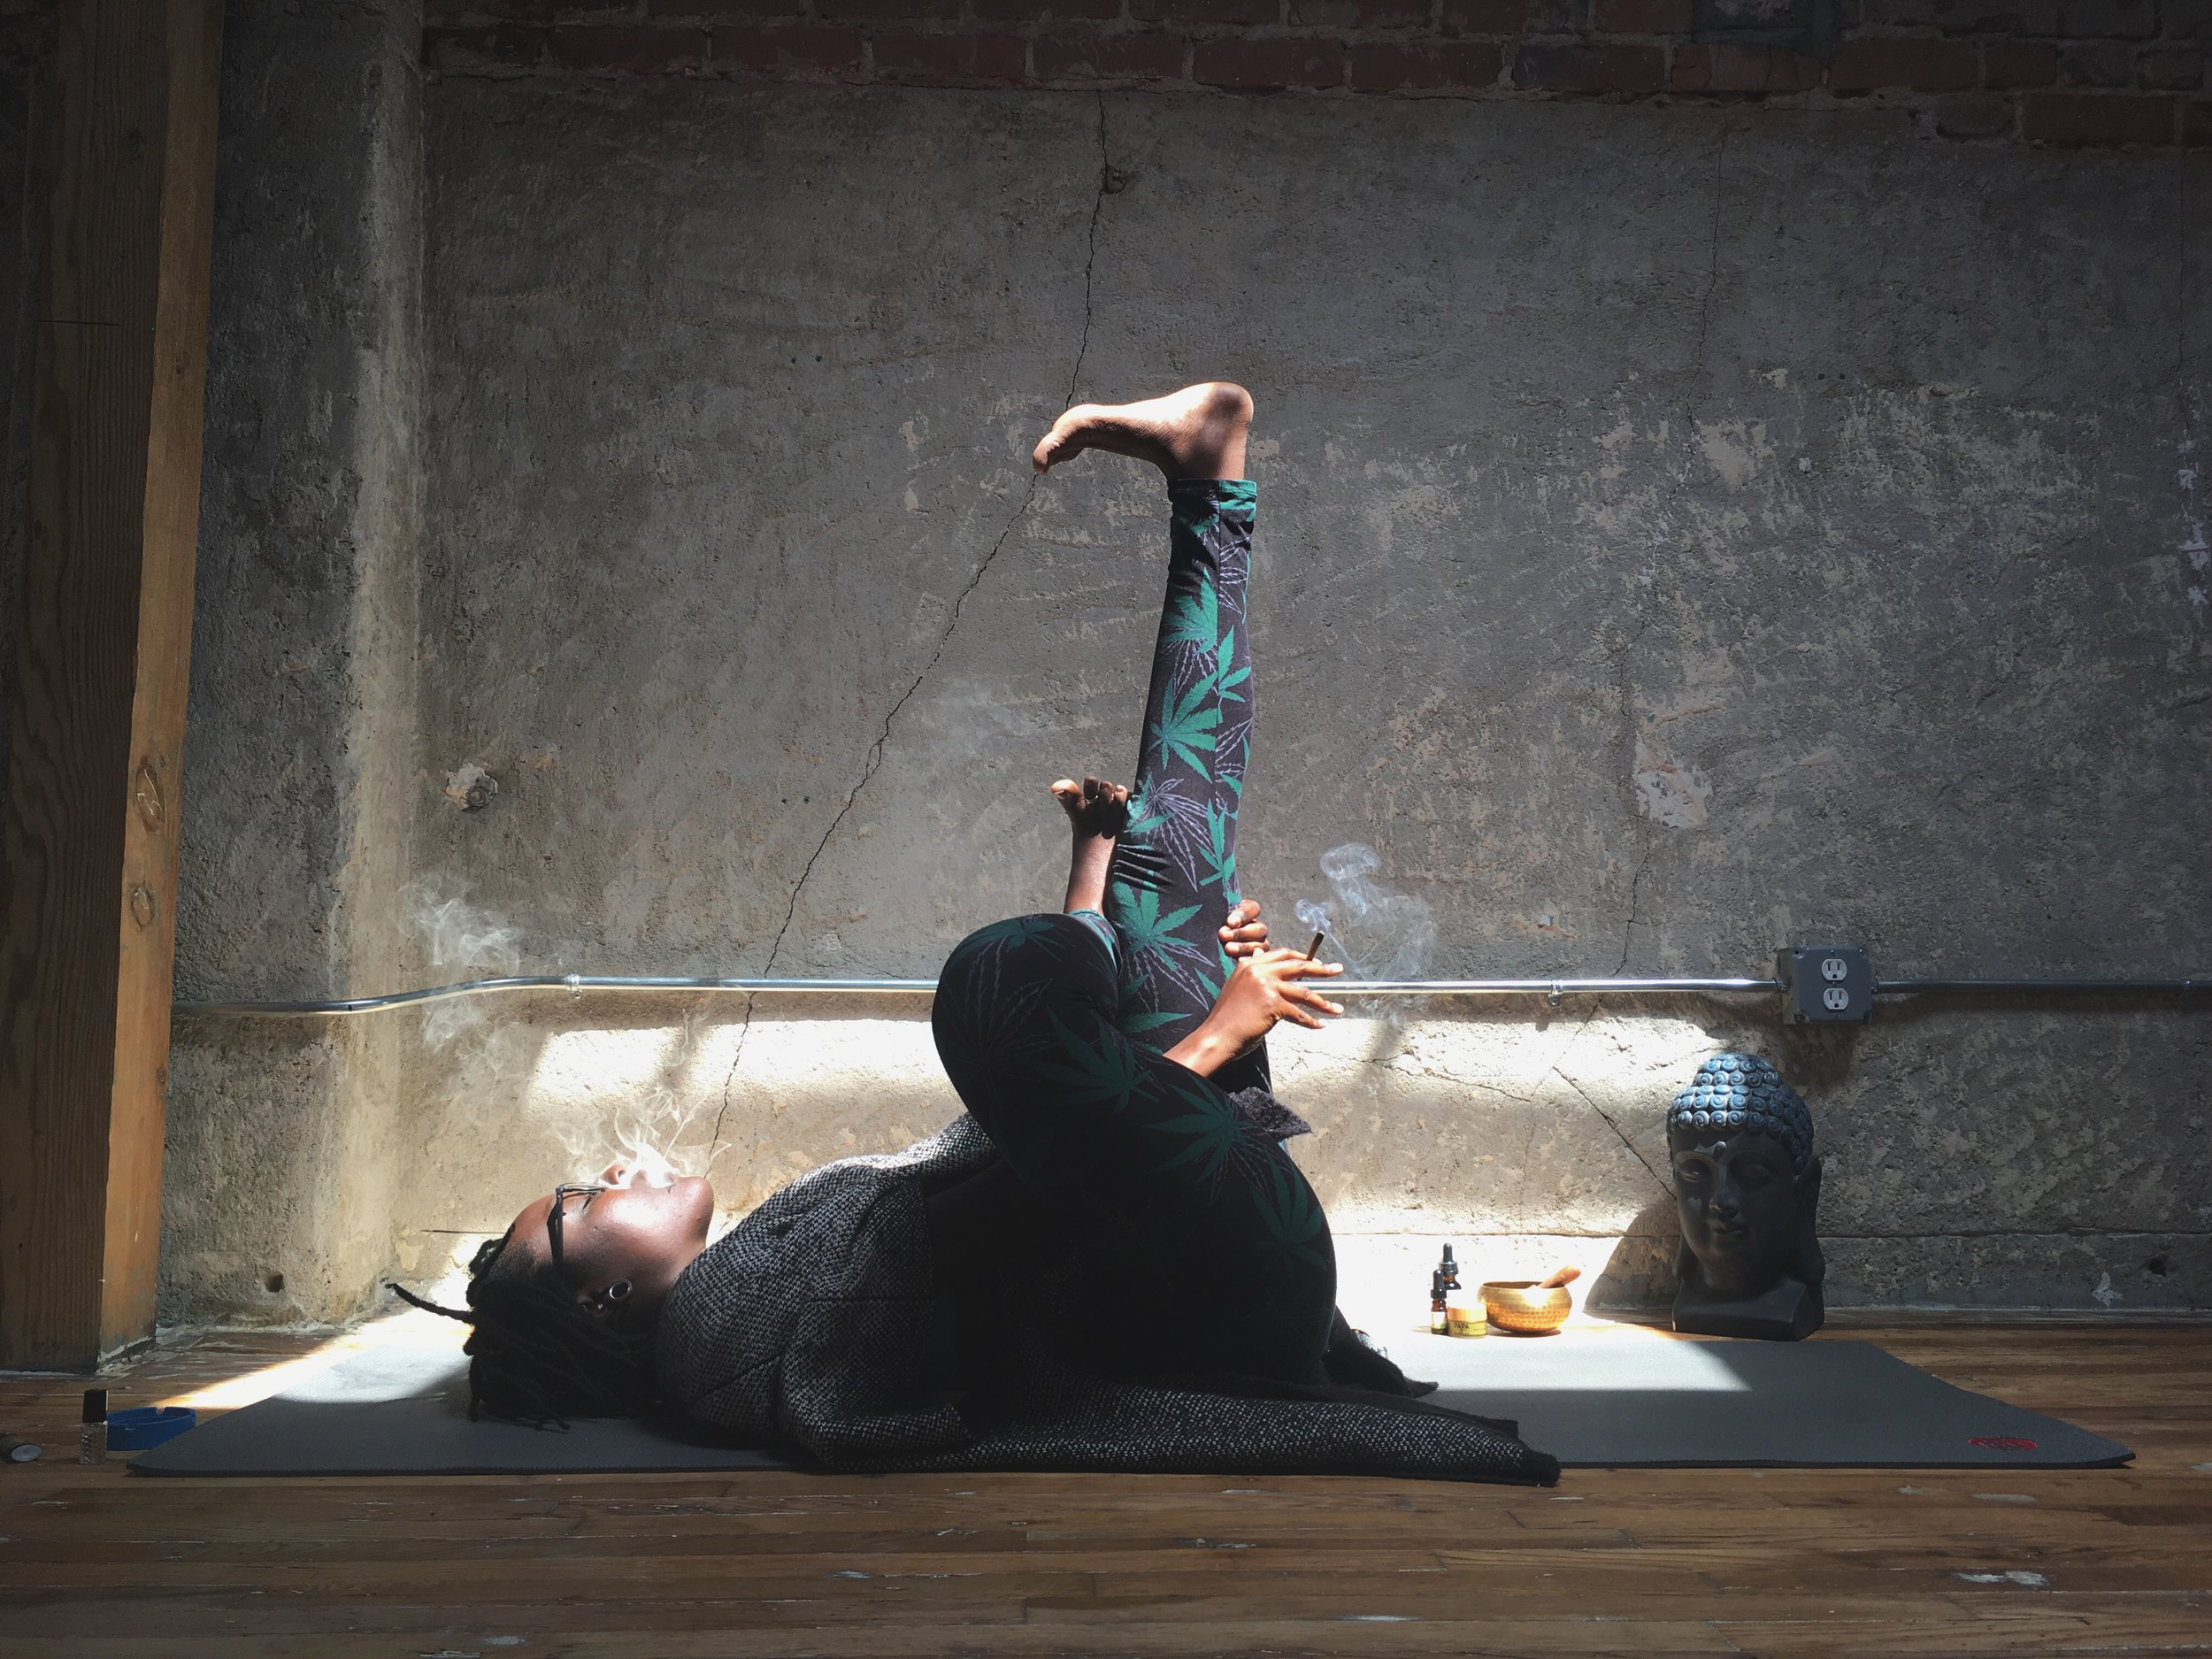 free online yoga classes - light up and share your yoga practice with me from the comfort of home